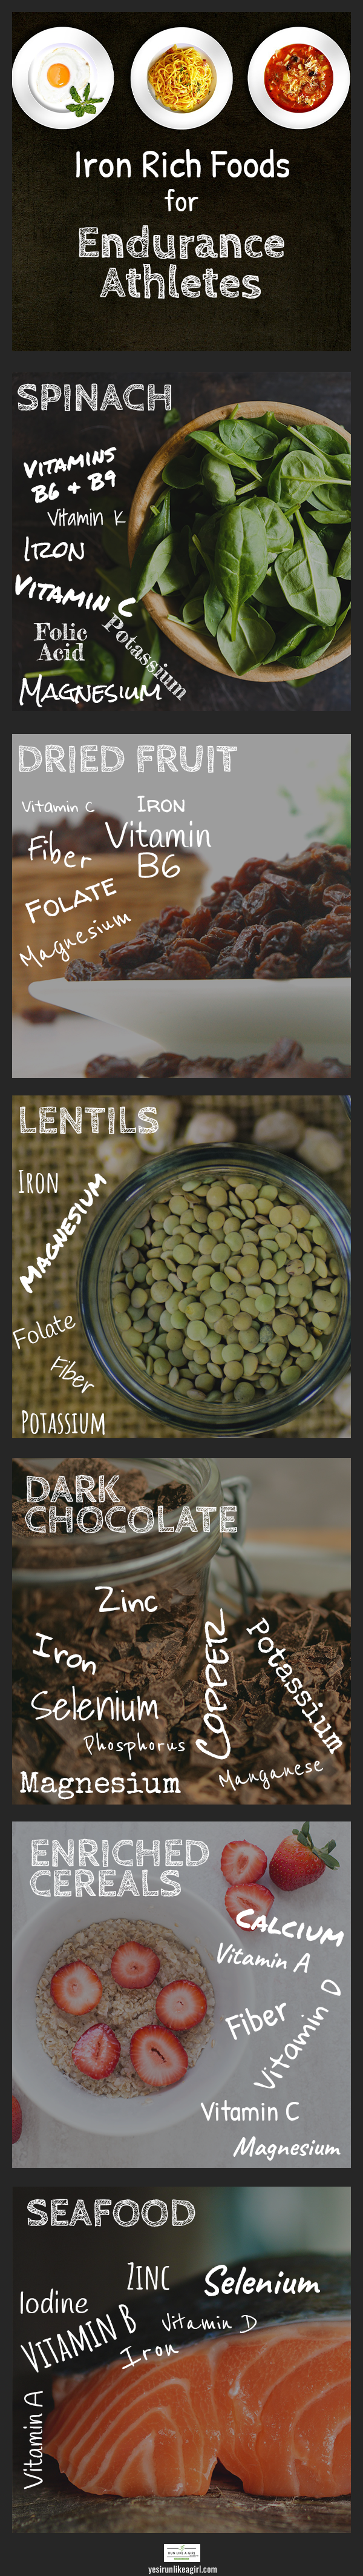 foods rich in iron infographic